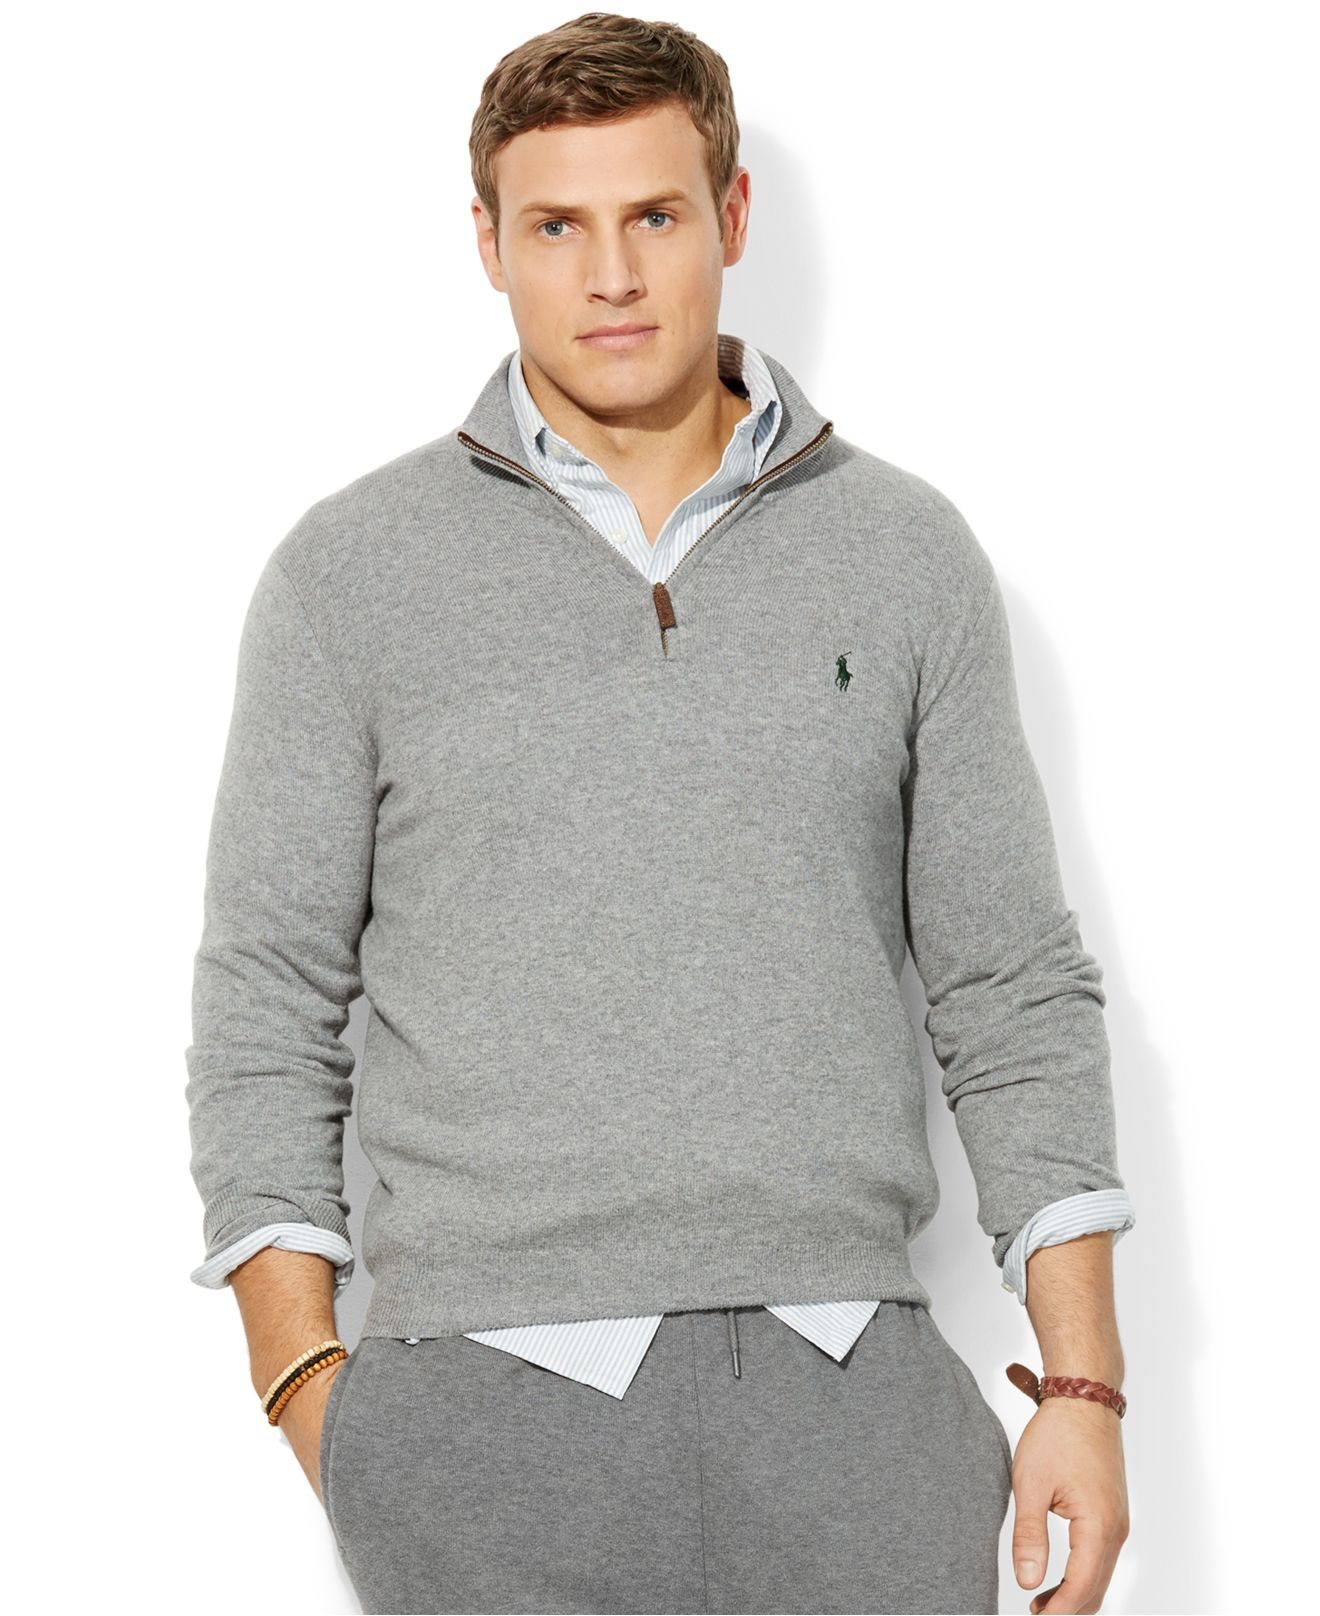 Lyst - Polo Ralph Lauren Big And Tall Loryelle Wool-Blend Quarter Zip  Sweater in Gray for Men 39a8e9bb6a58